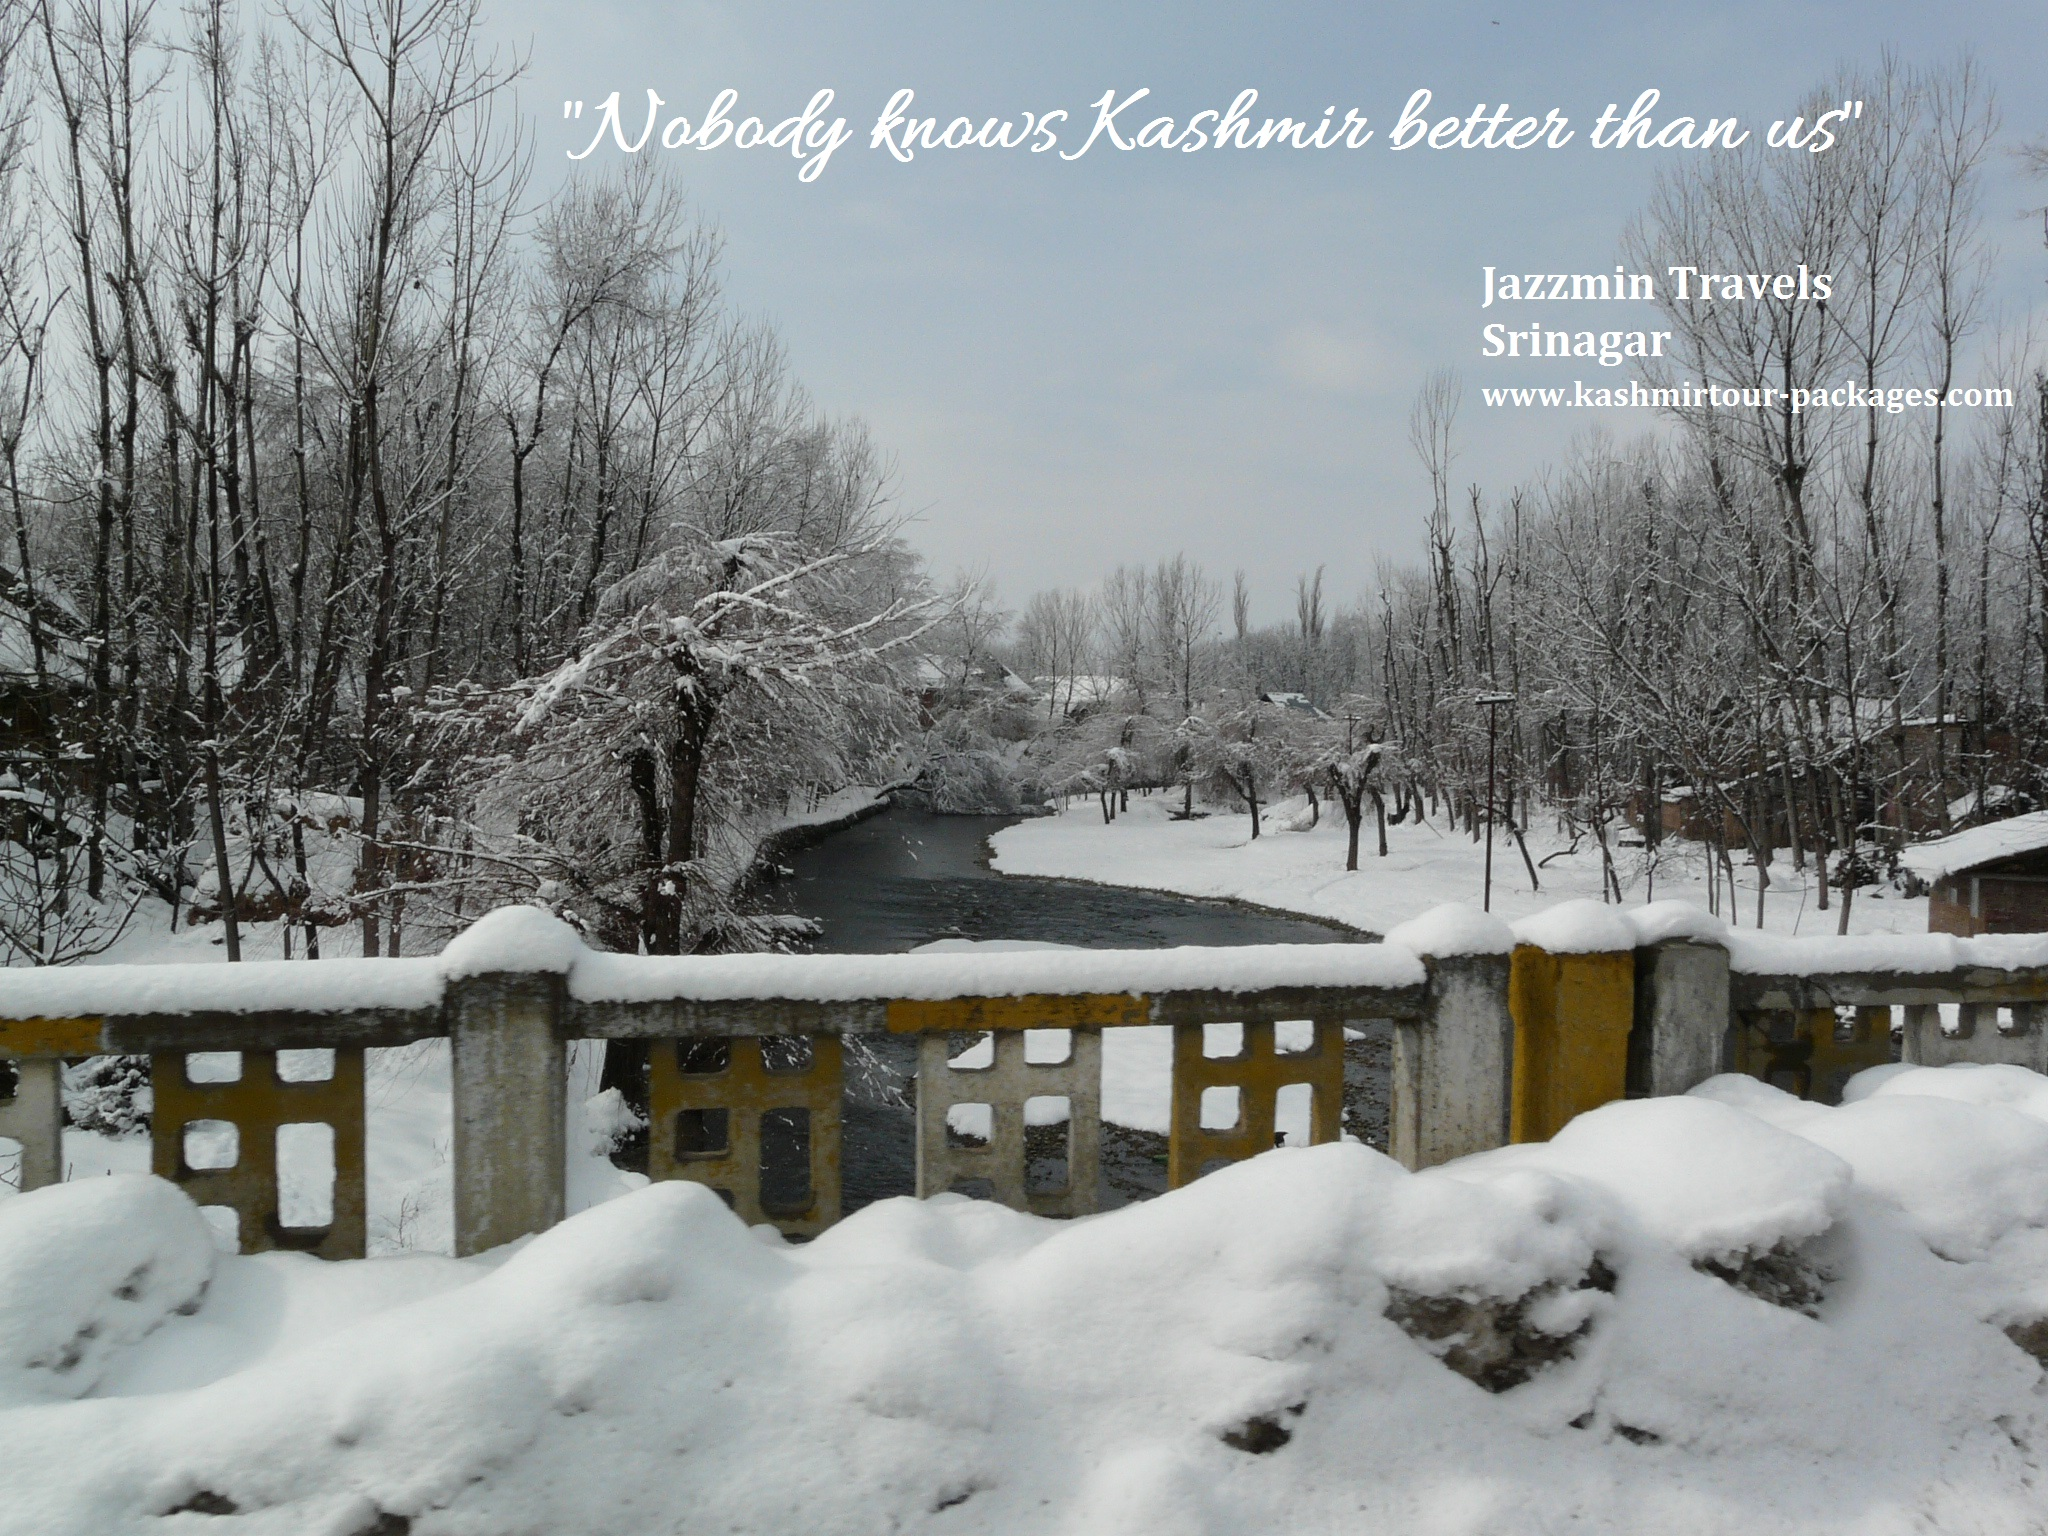 Kashmir Holiday Packages 38 from www.kashmirtour-packages.com